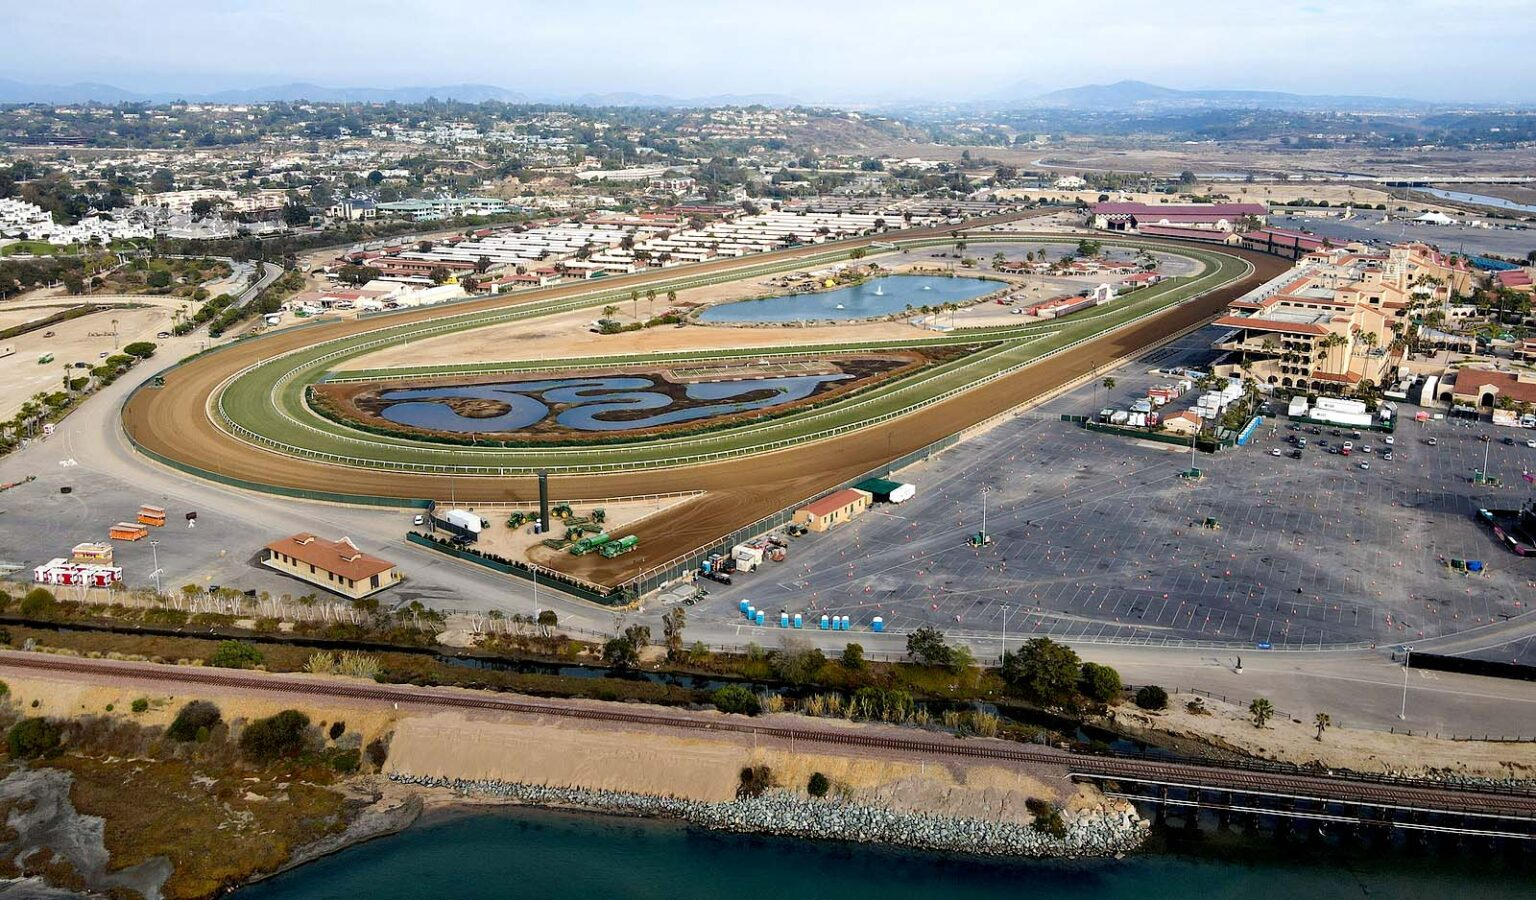 Breeders' Cup, planned for Del Mar, delays ticket sales due to COVID-19